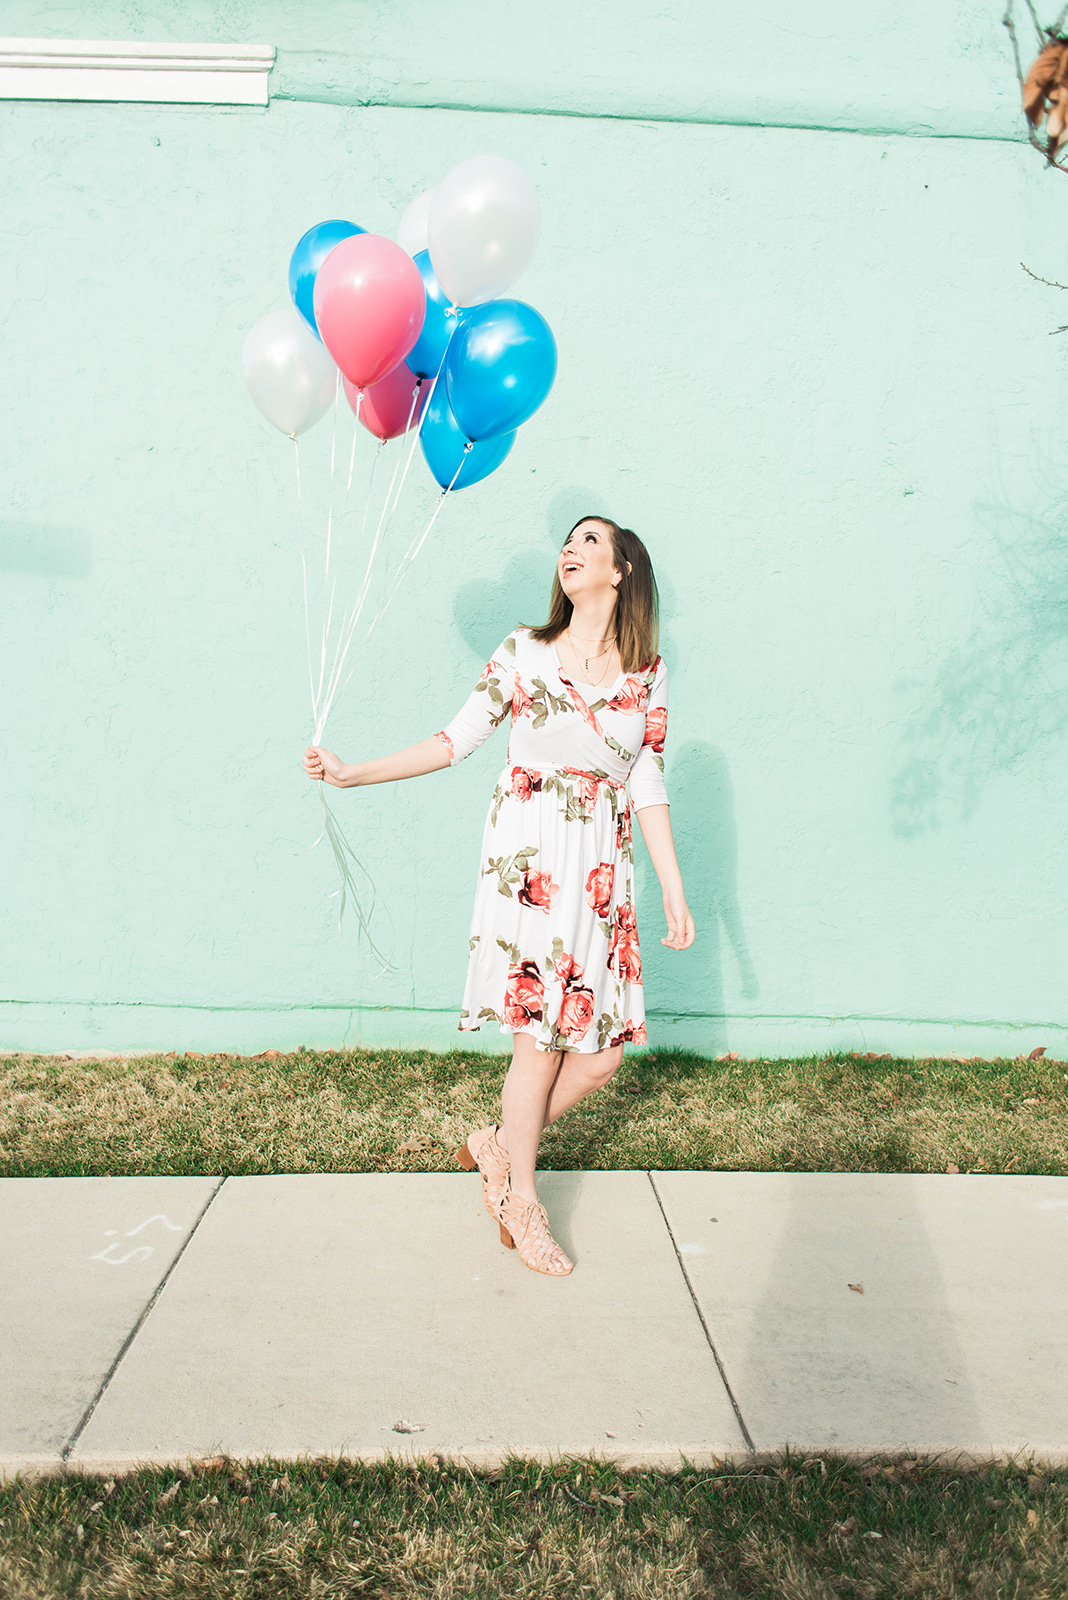 Balloon Photography Idea // Hey There, Chelsie